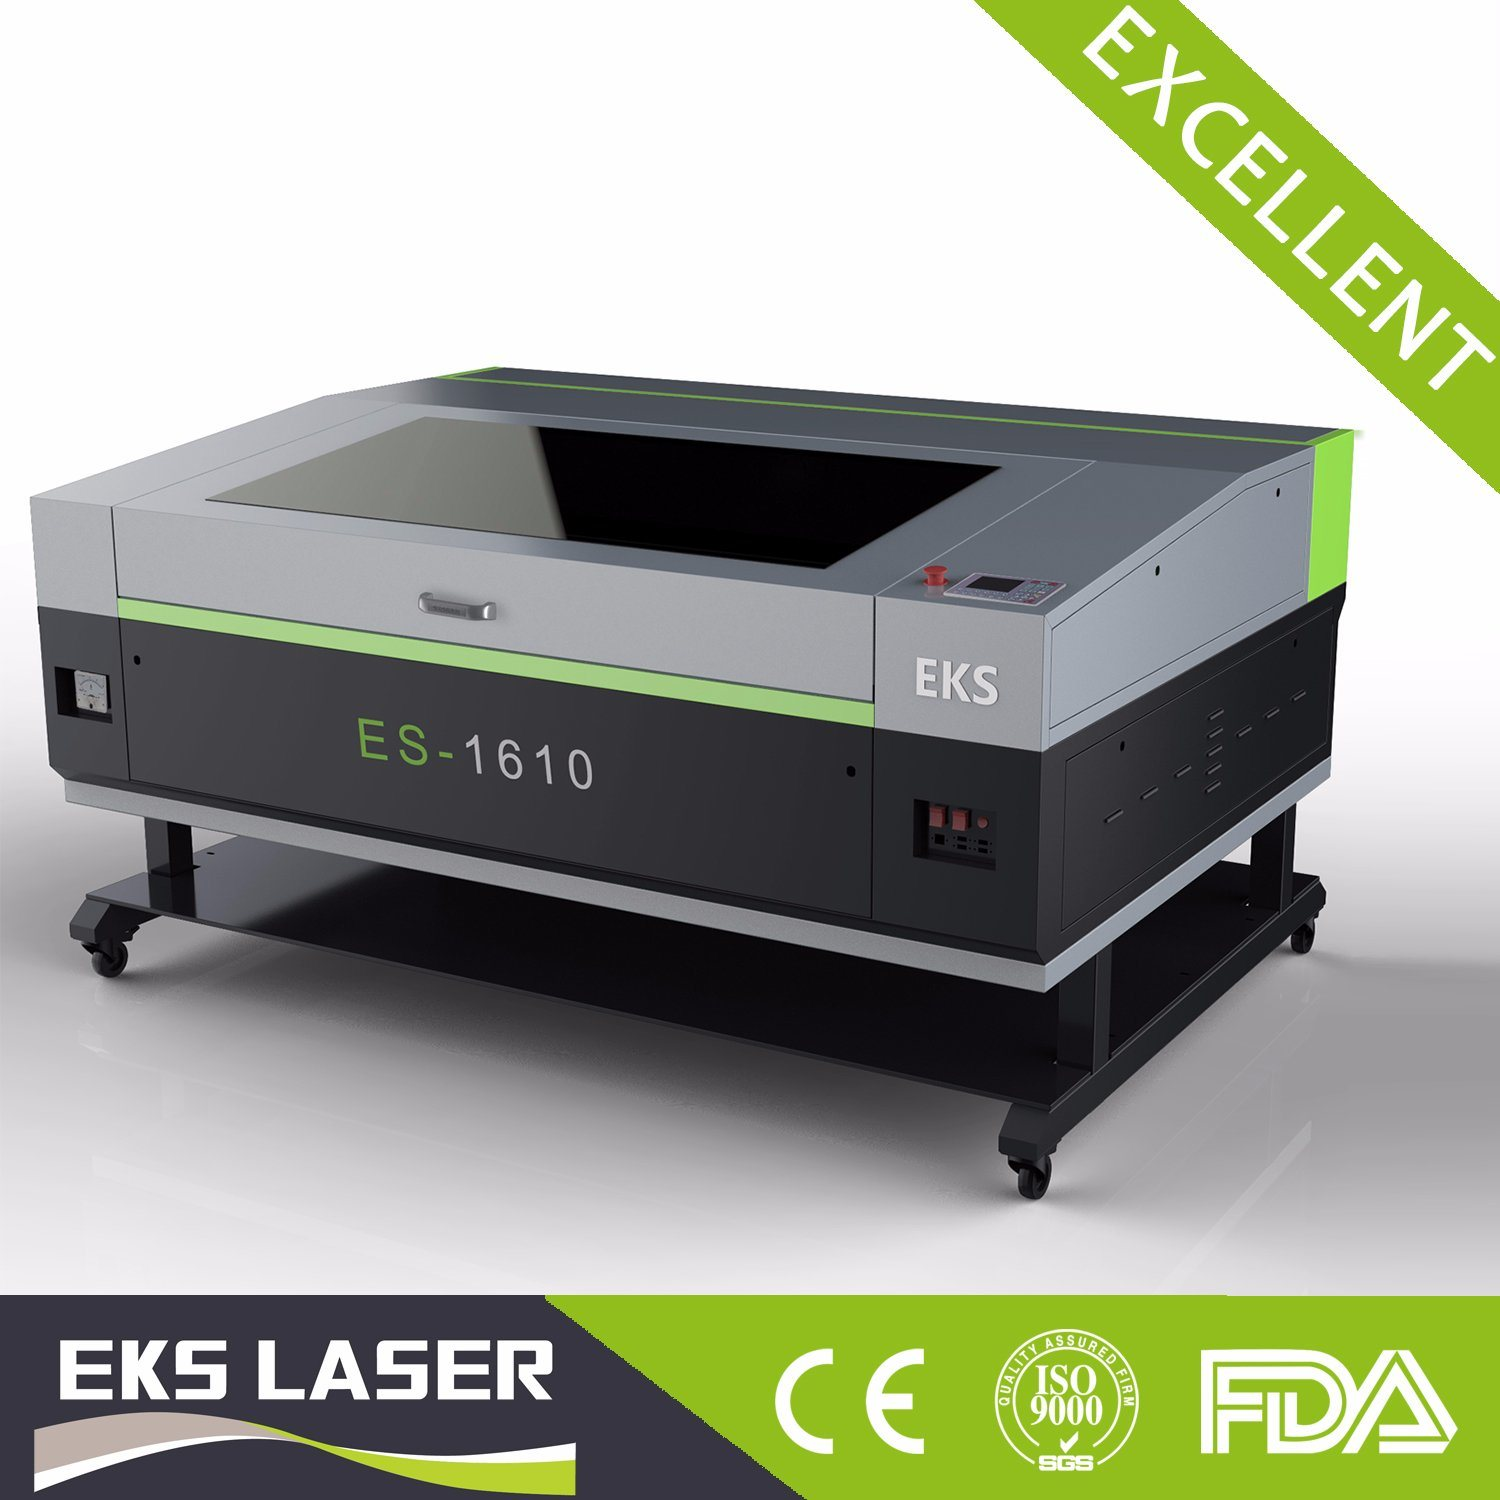 Wood Acrylic Nonmetal CO2 Laser Cutting and Engraving Machine for Sale Es-1610